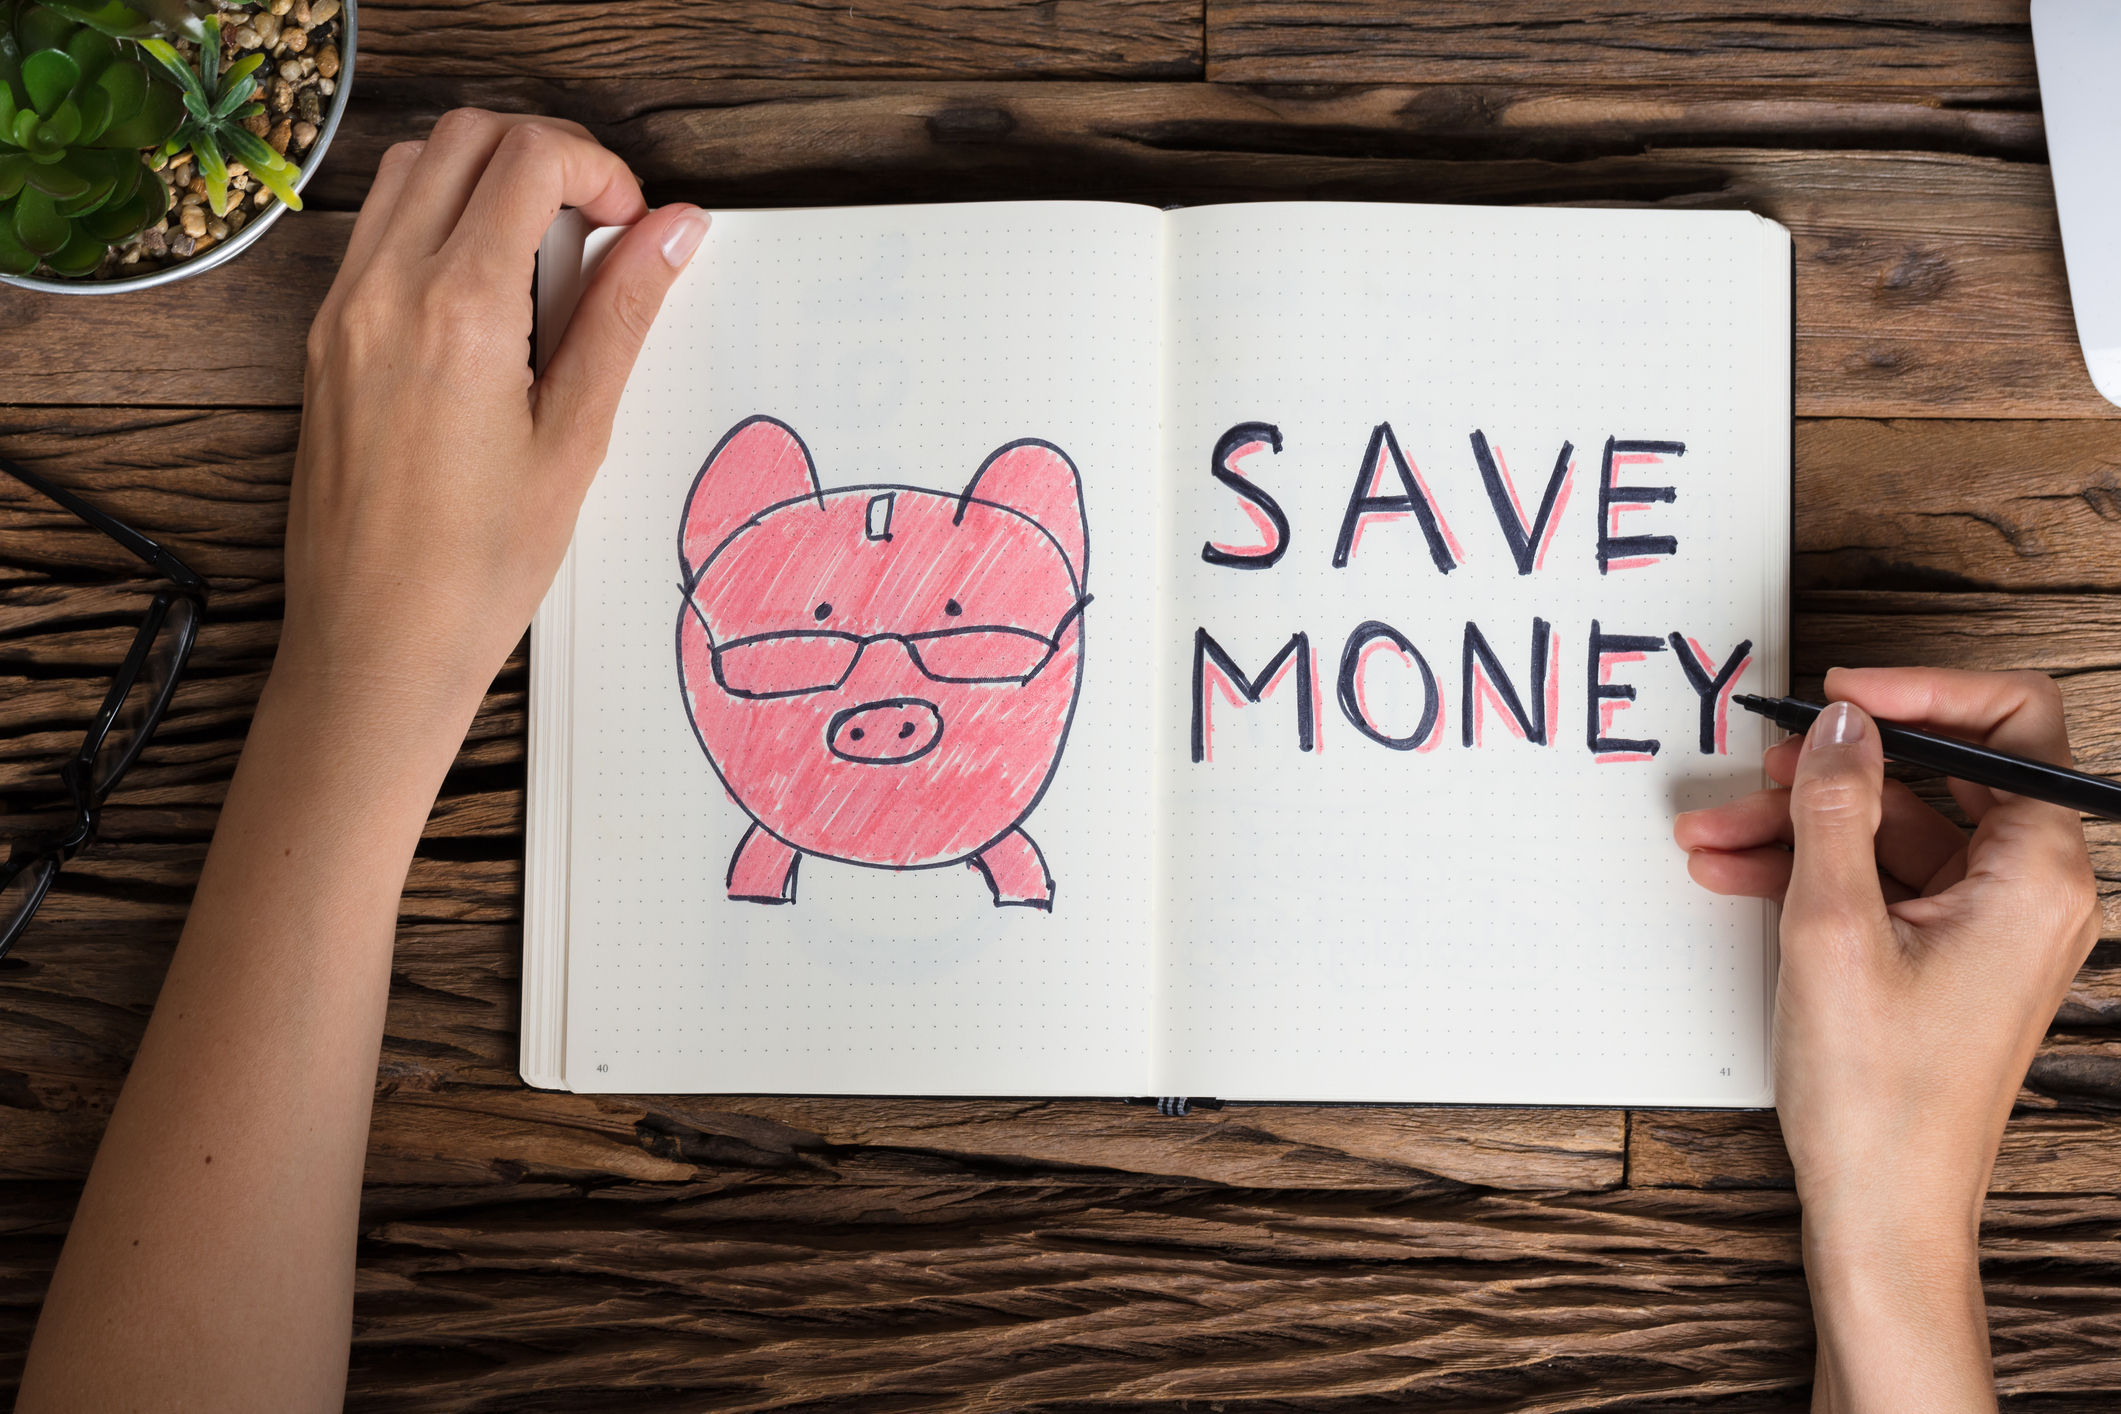 PLEDGE FOR 2019: One of Maxine's resolutions – or revelations – is to save money this year